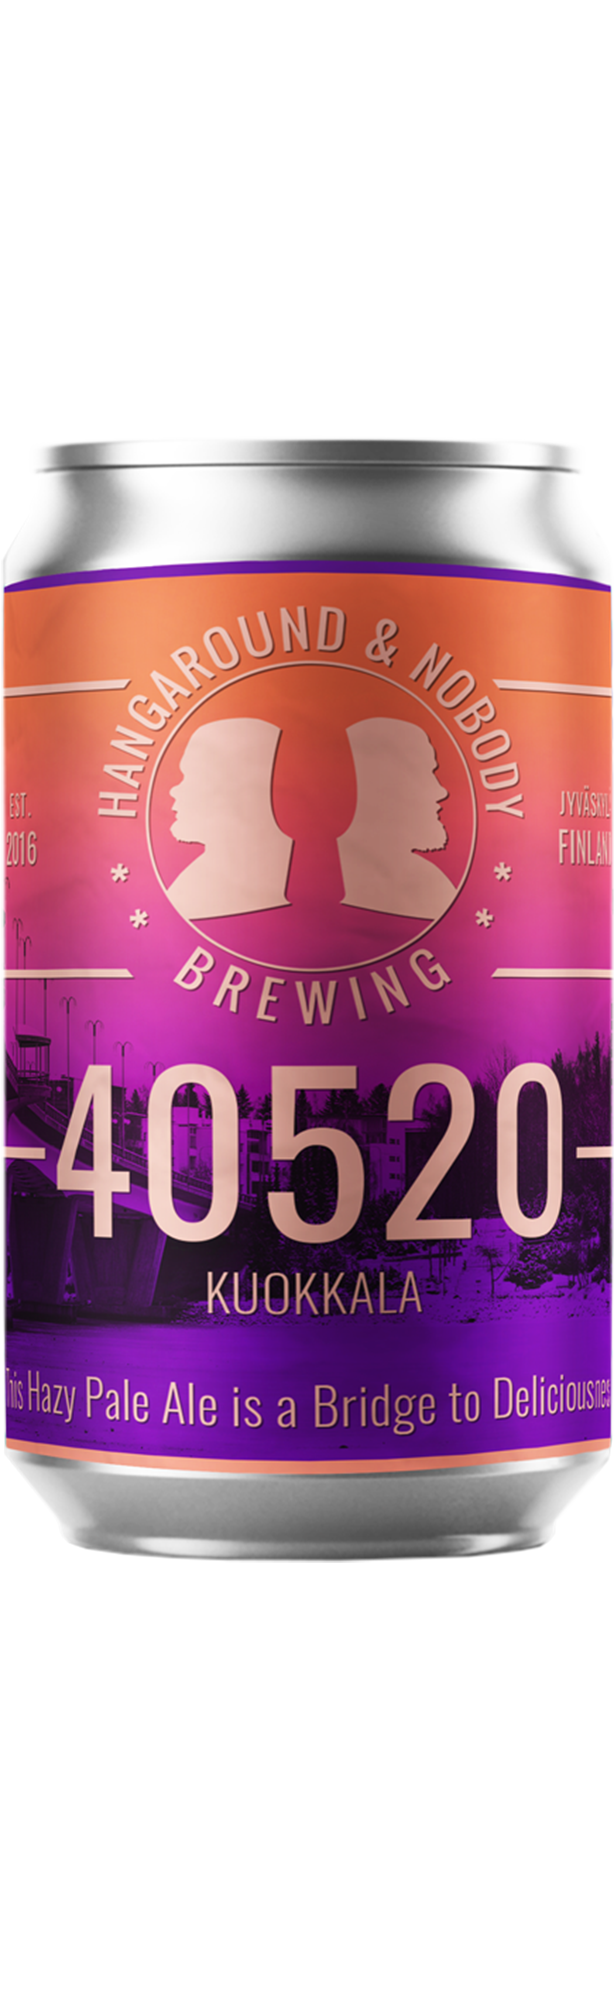 40250 2019 beer edition